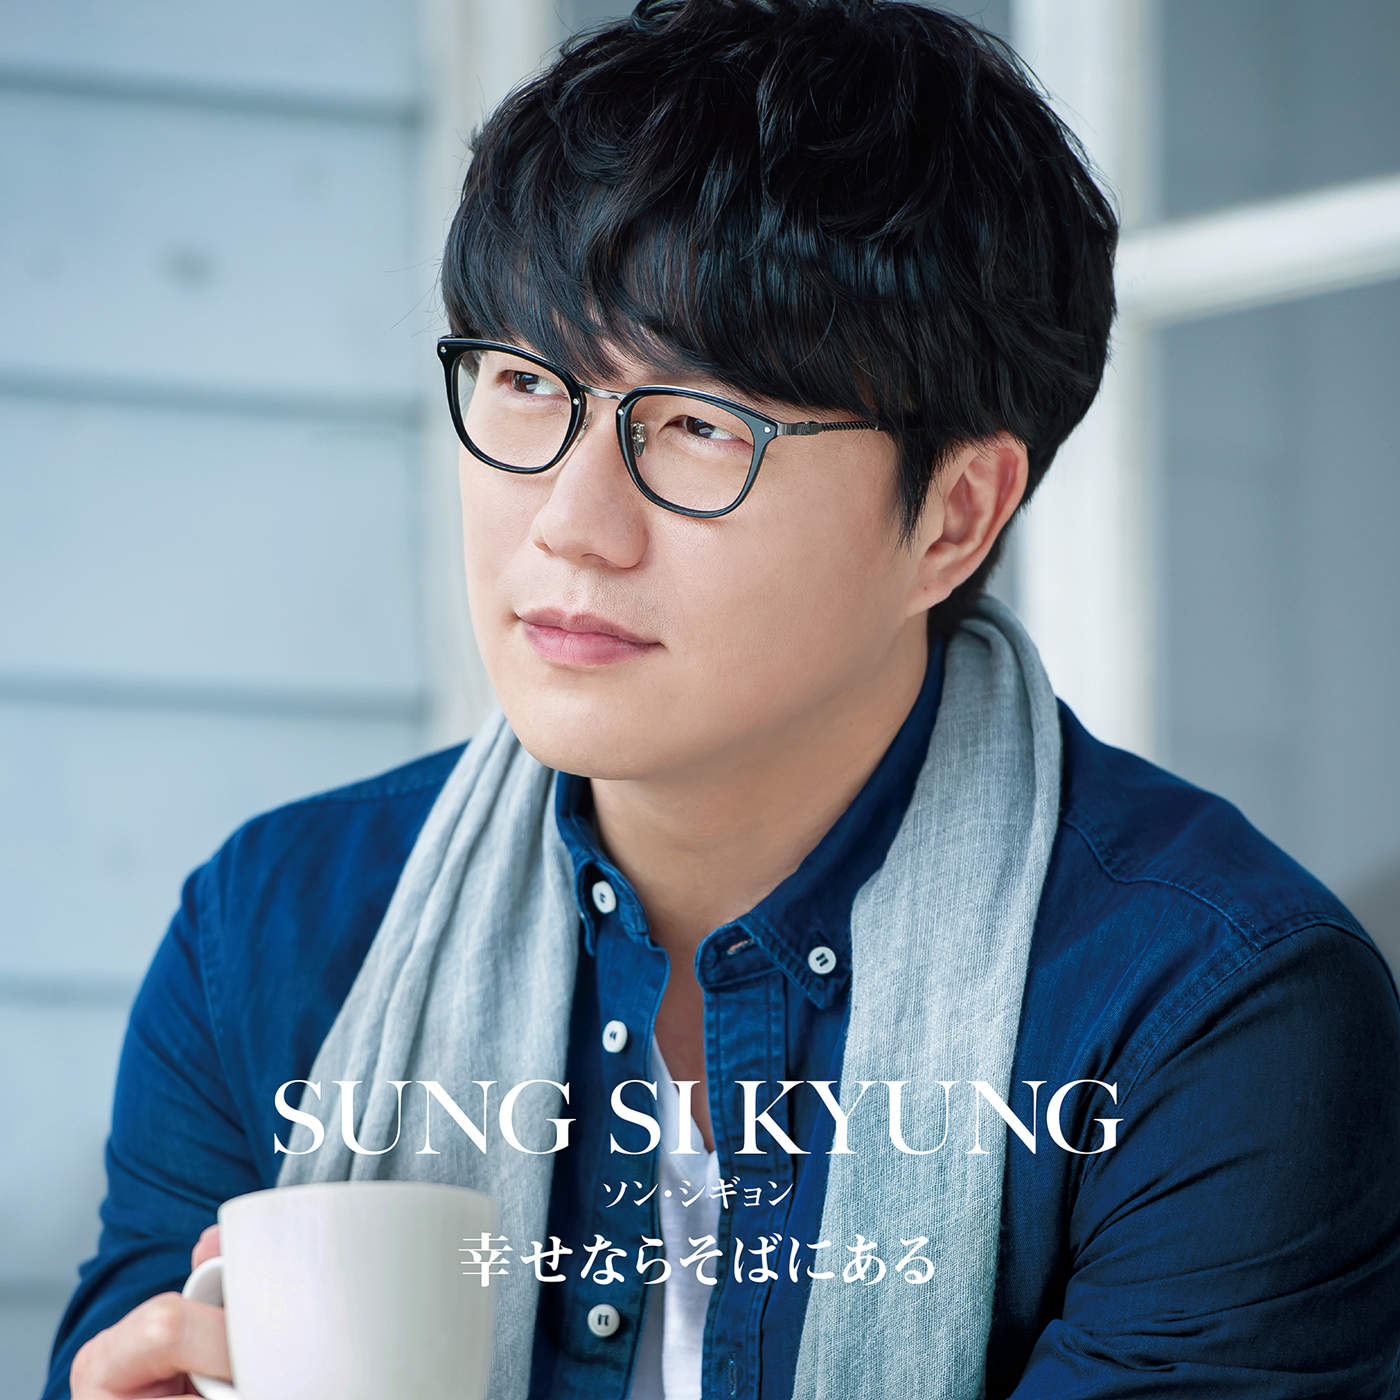 Image result for sung si kyung